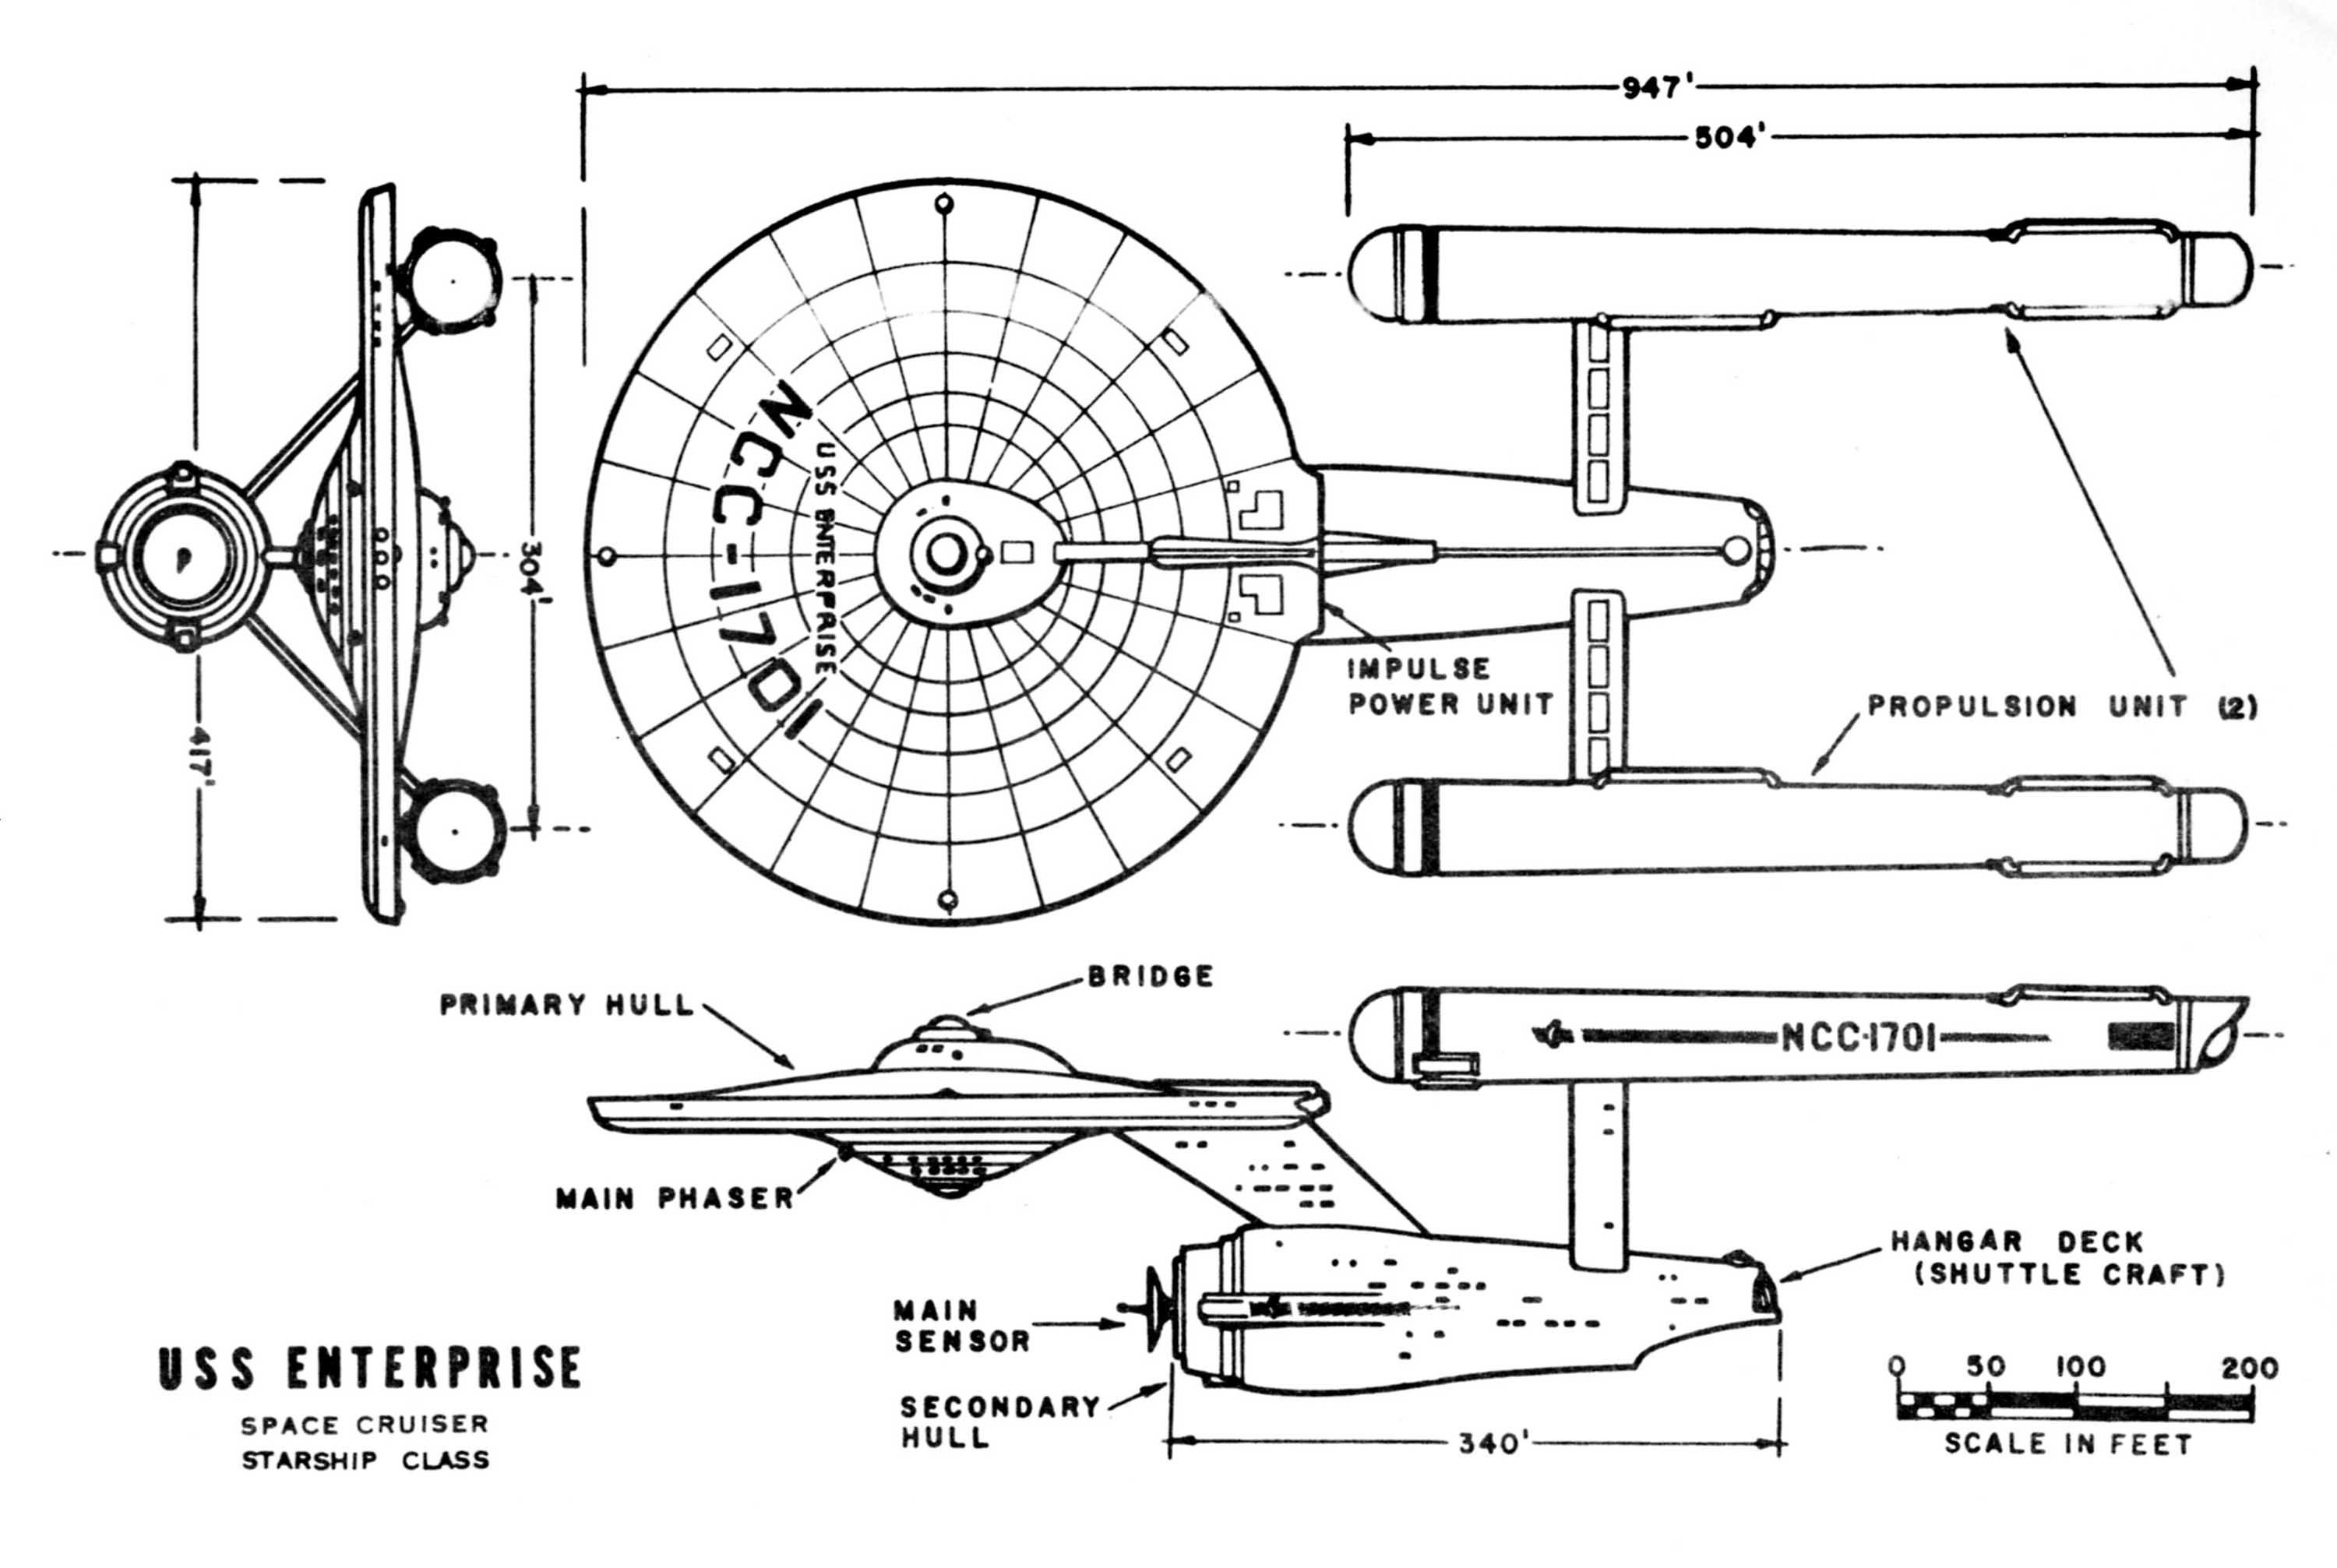 Enterprise Technical Drawings Star Trek Poster Star Trek Star Trek Tattoo